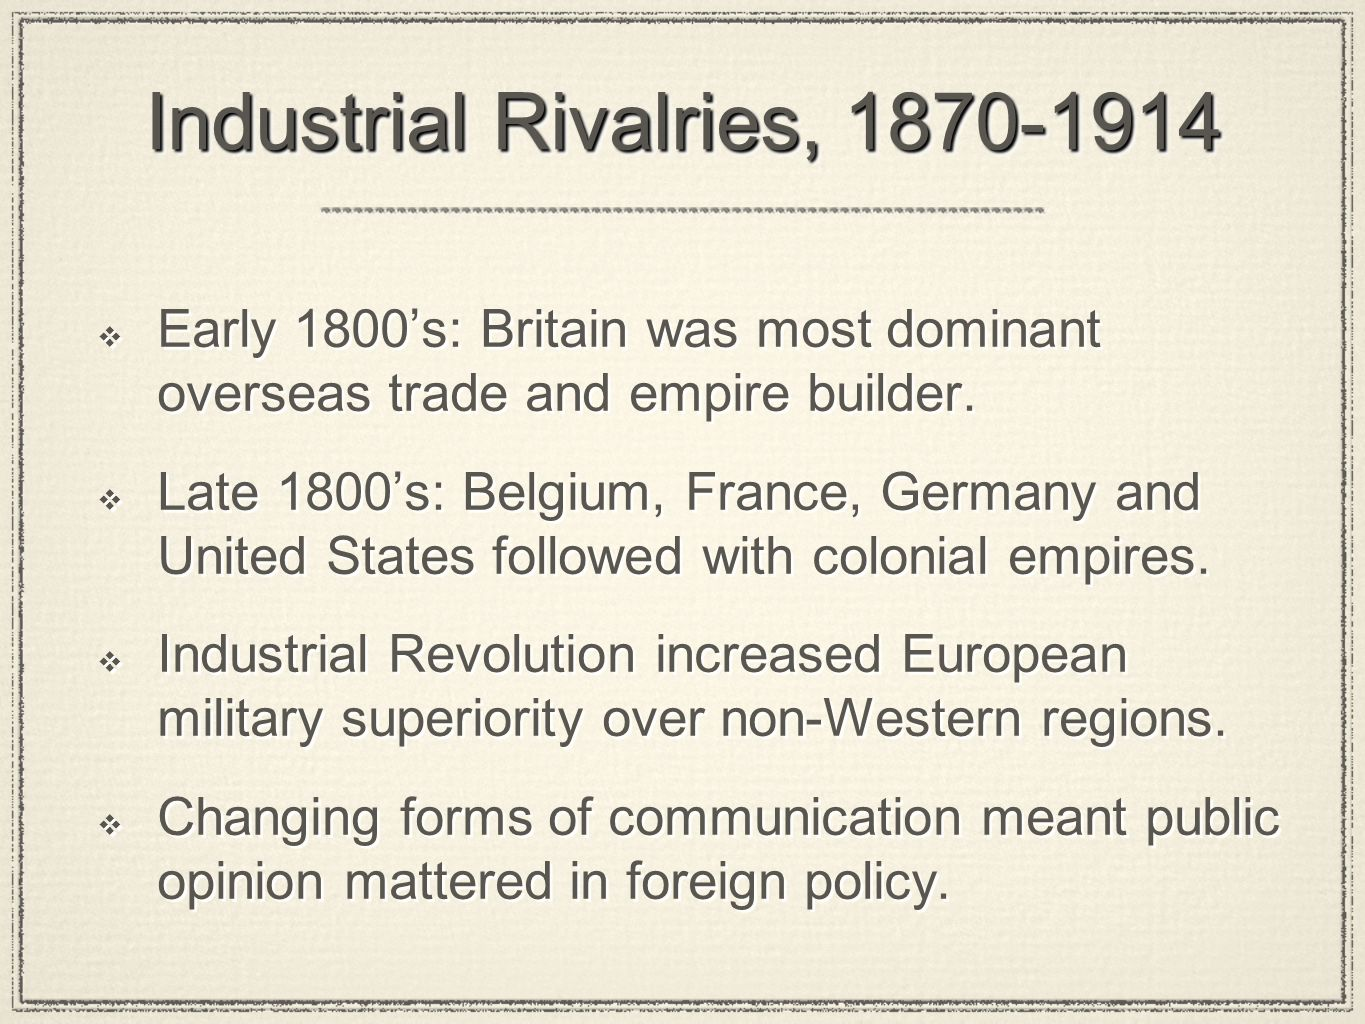 Industrial Rivalries, 1870-1914